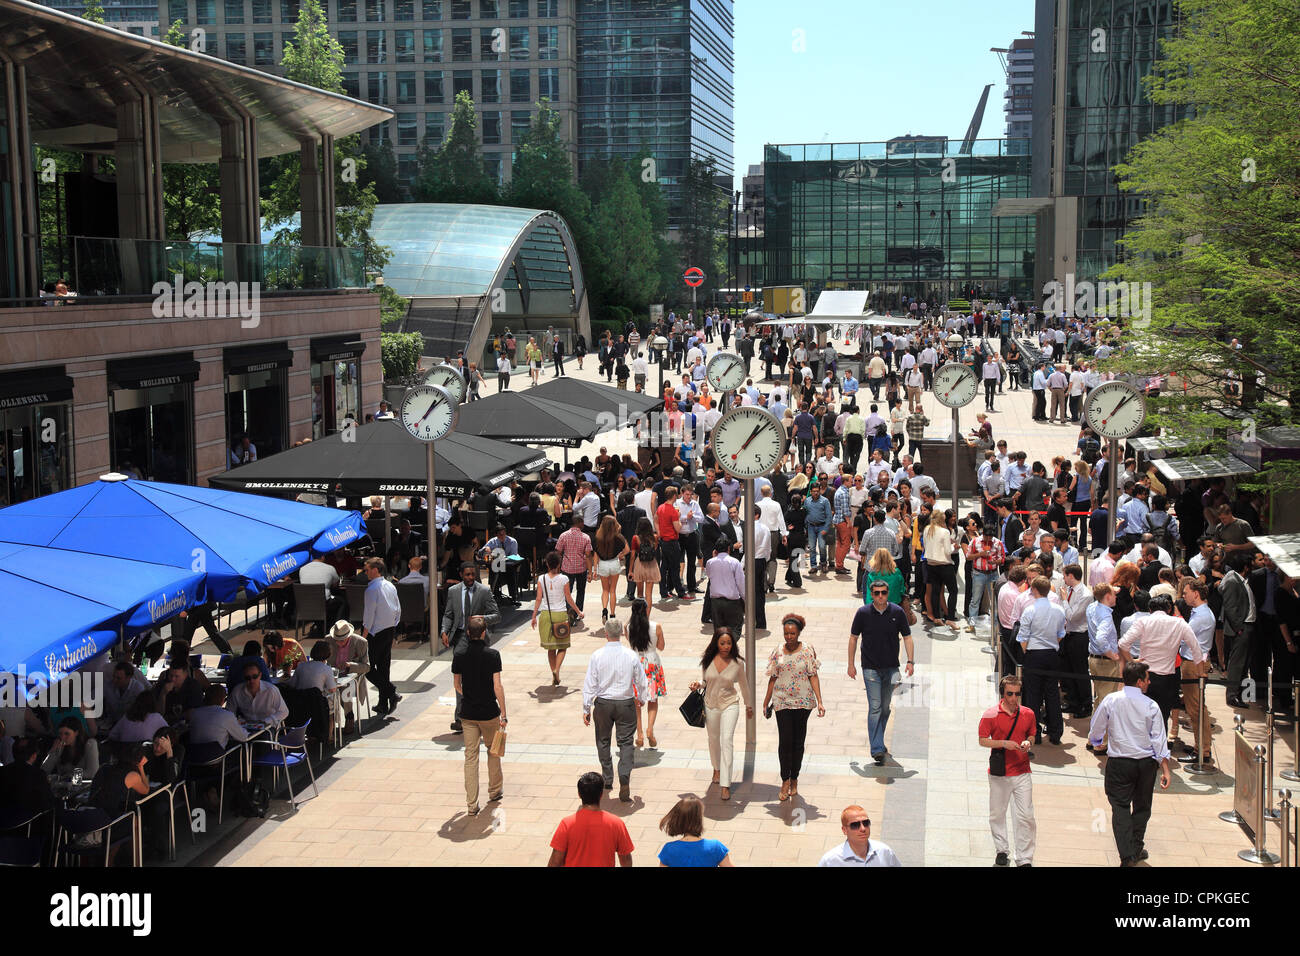 Lunch at Canary Wharf in the summer sunshine. - Stock Image